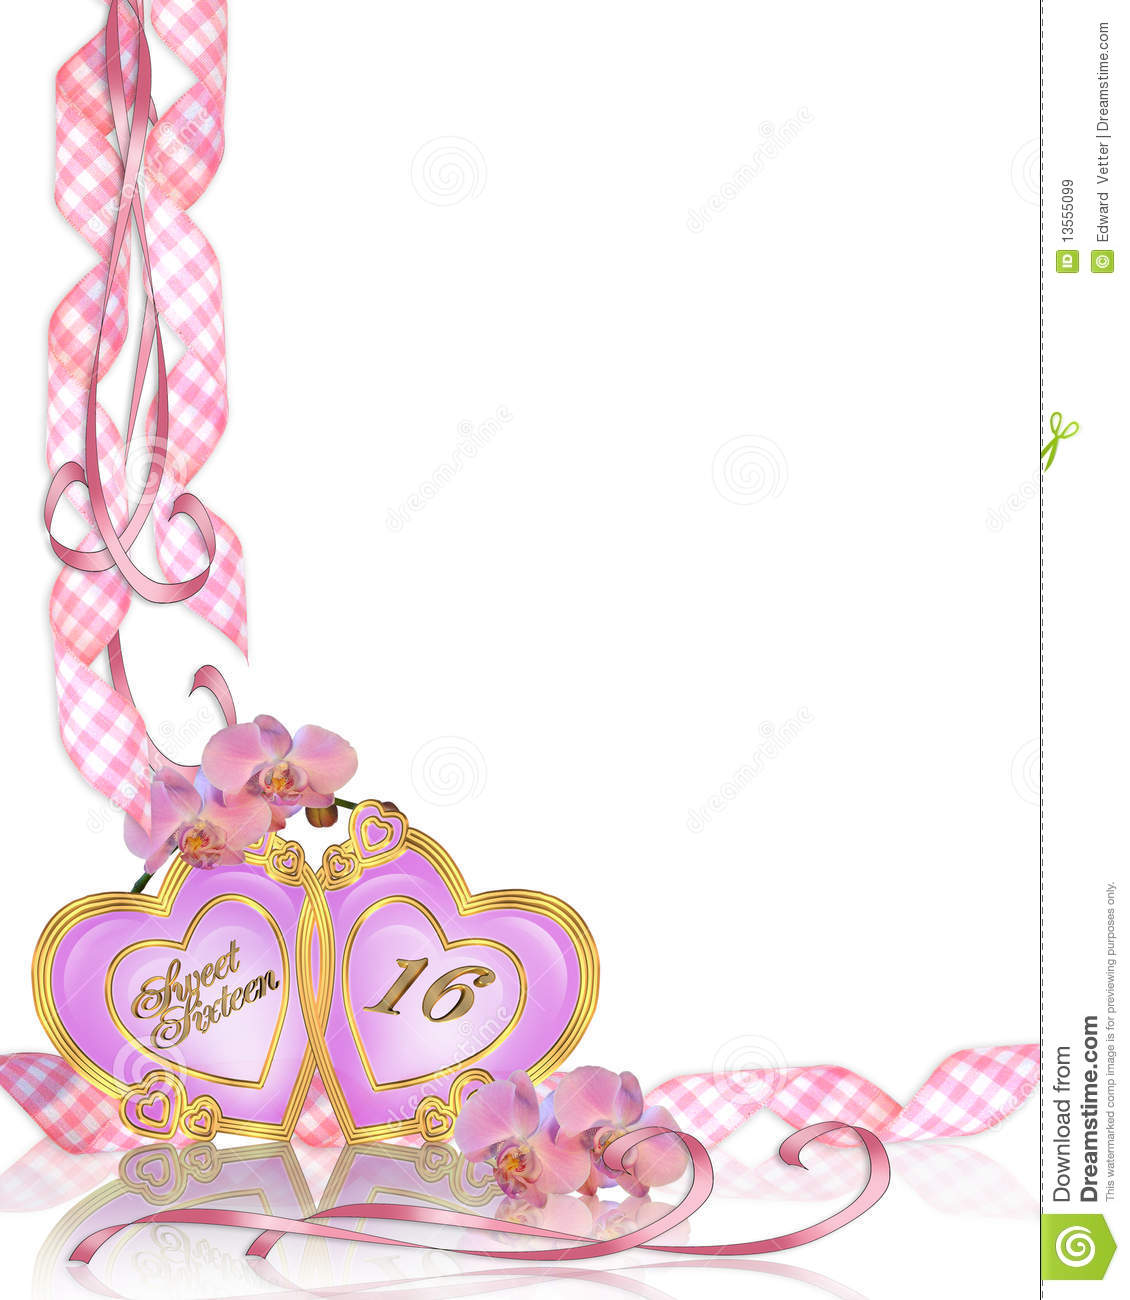 Sweet 16 Birthday Invitation Border Stock Illustration - Image: 13555099